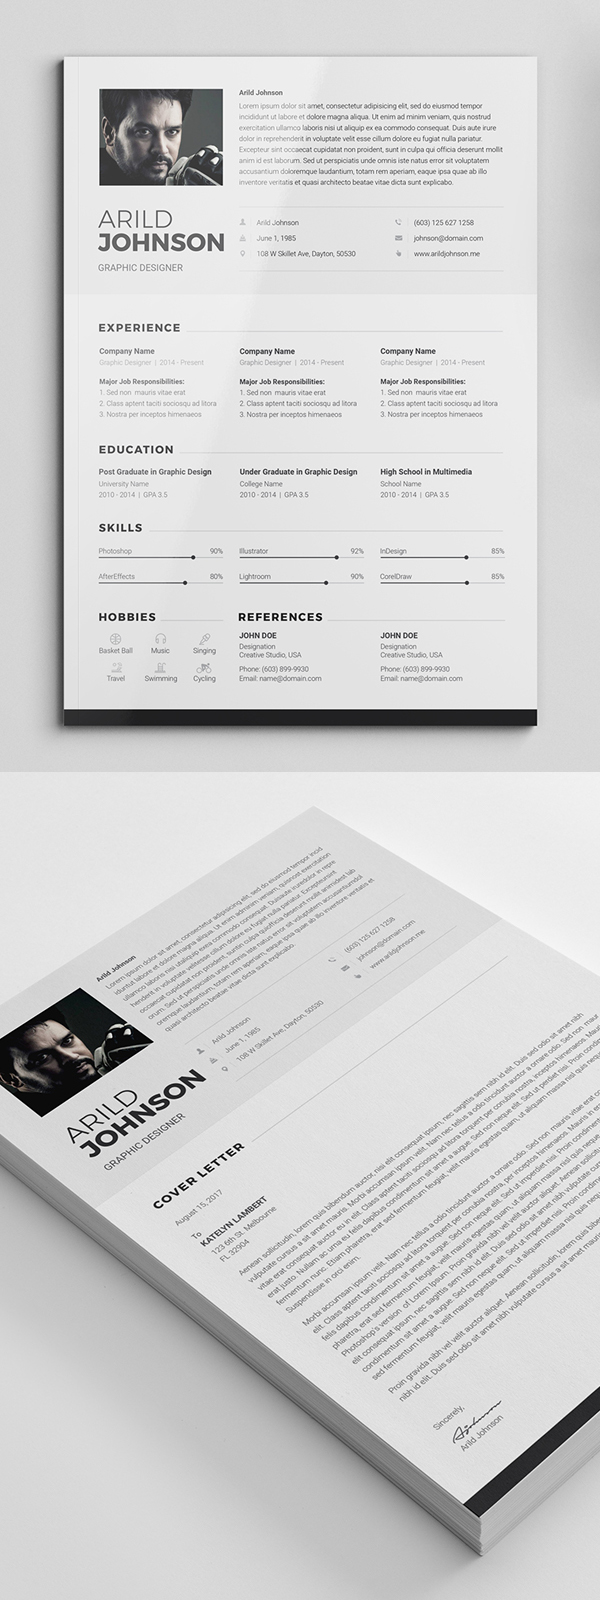 50 Free CV / Resume Templates Best for 2019 in 2020